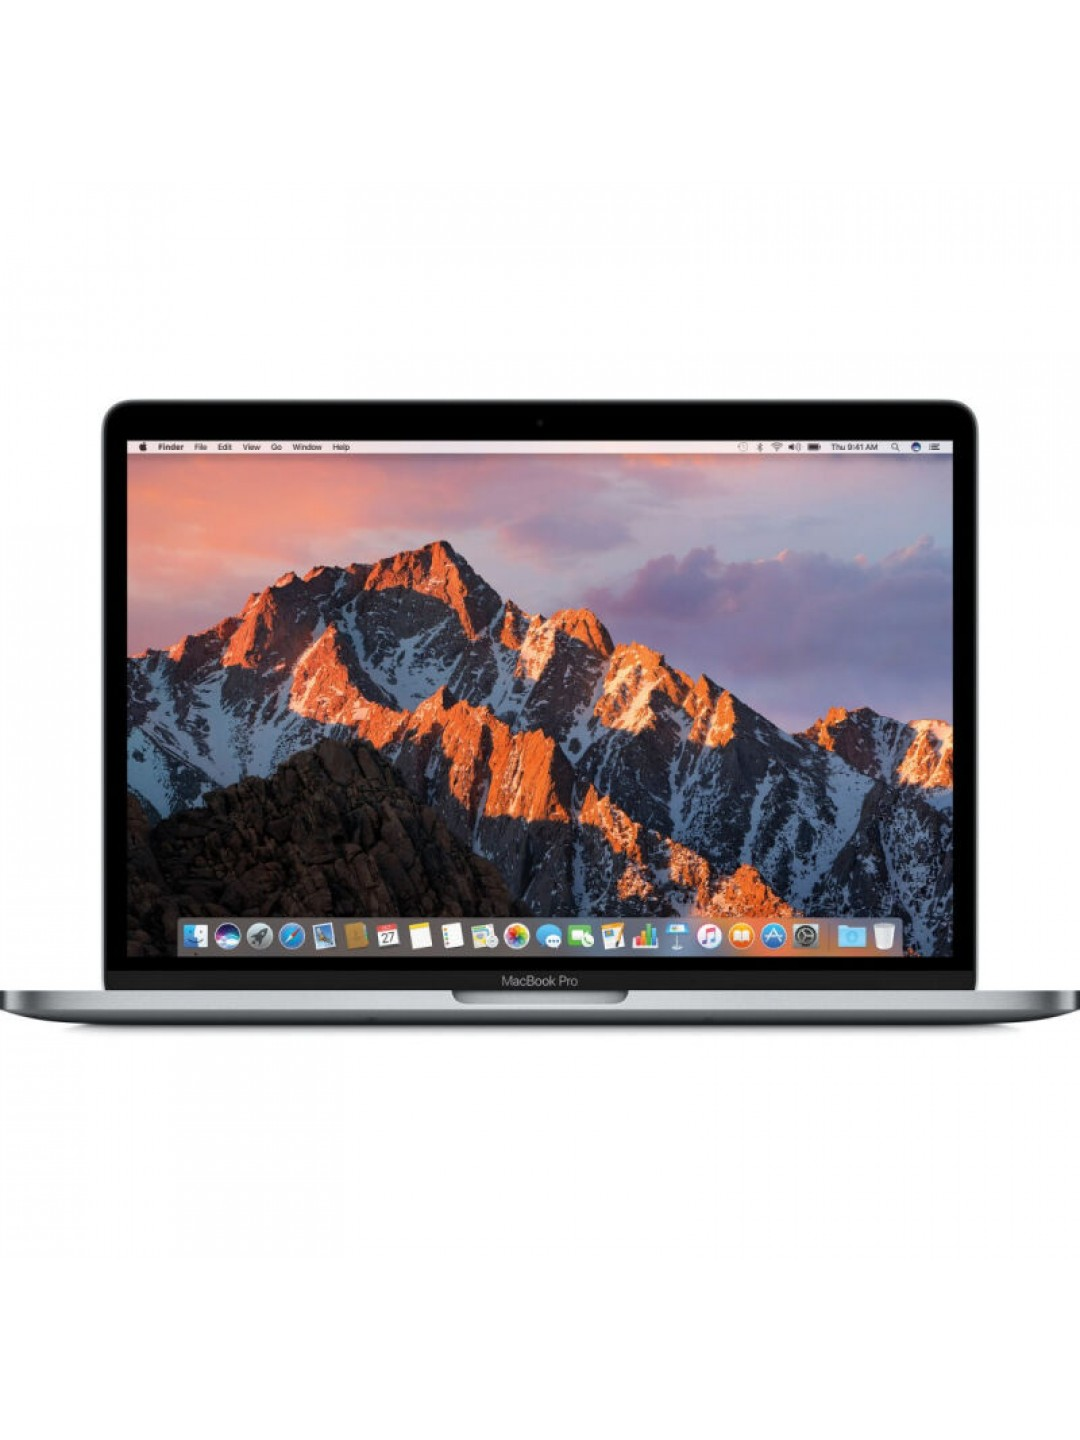 Laptop Apple Macbook Pro 2017 MPXT2 13 inch Non Touch Bar/2.3Ghz Dualcore i5/8GB/256GB/Intel Iris Graphics 640